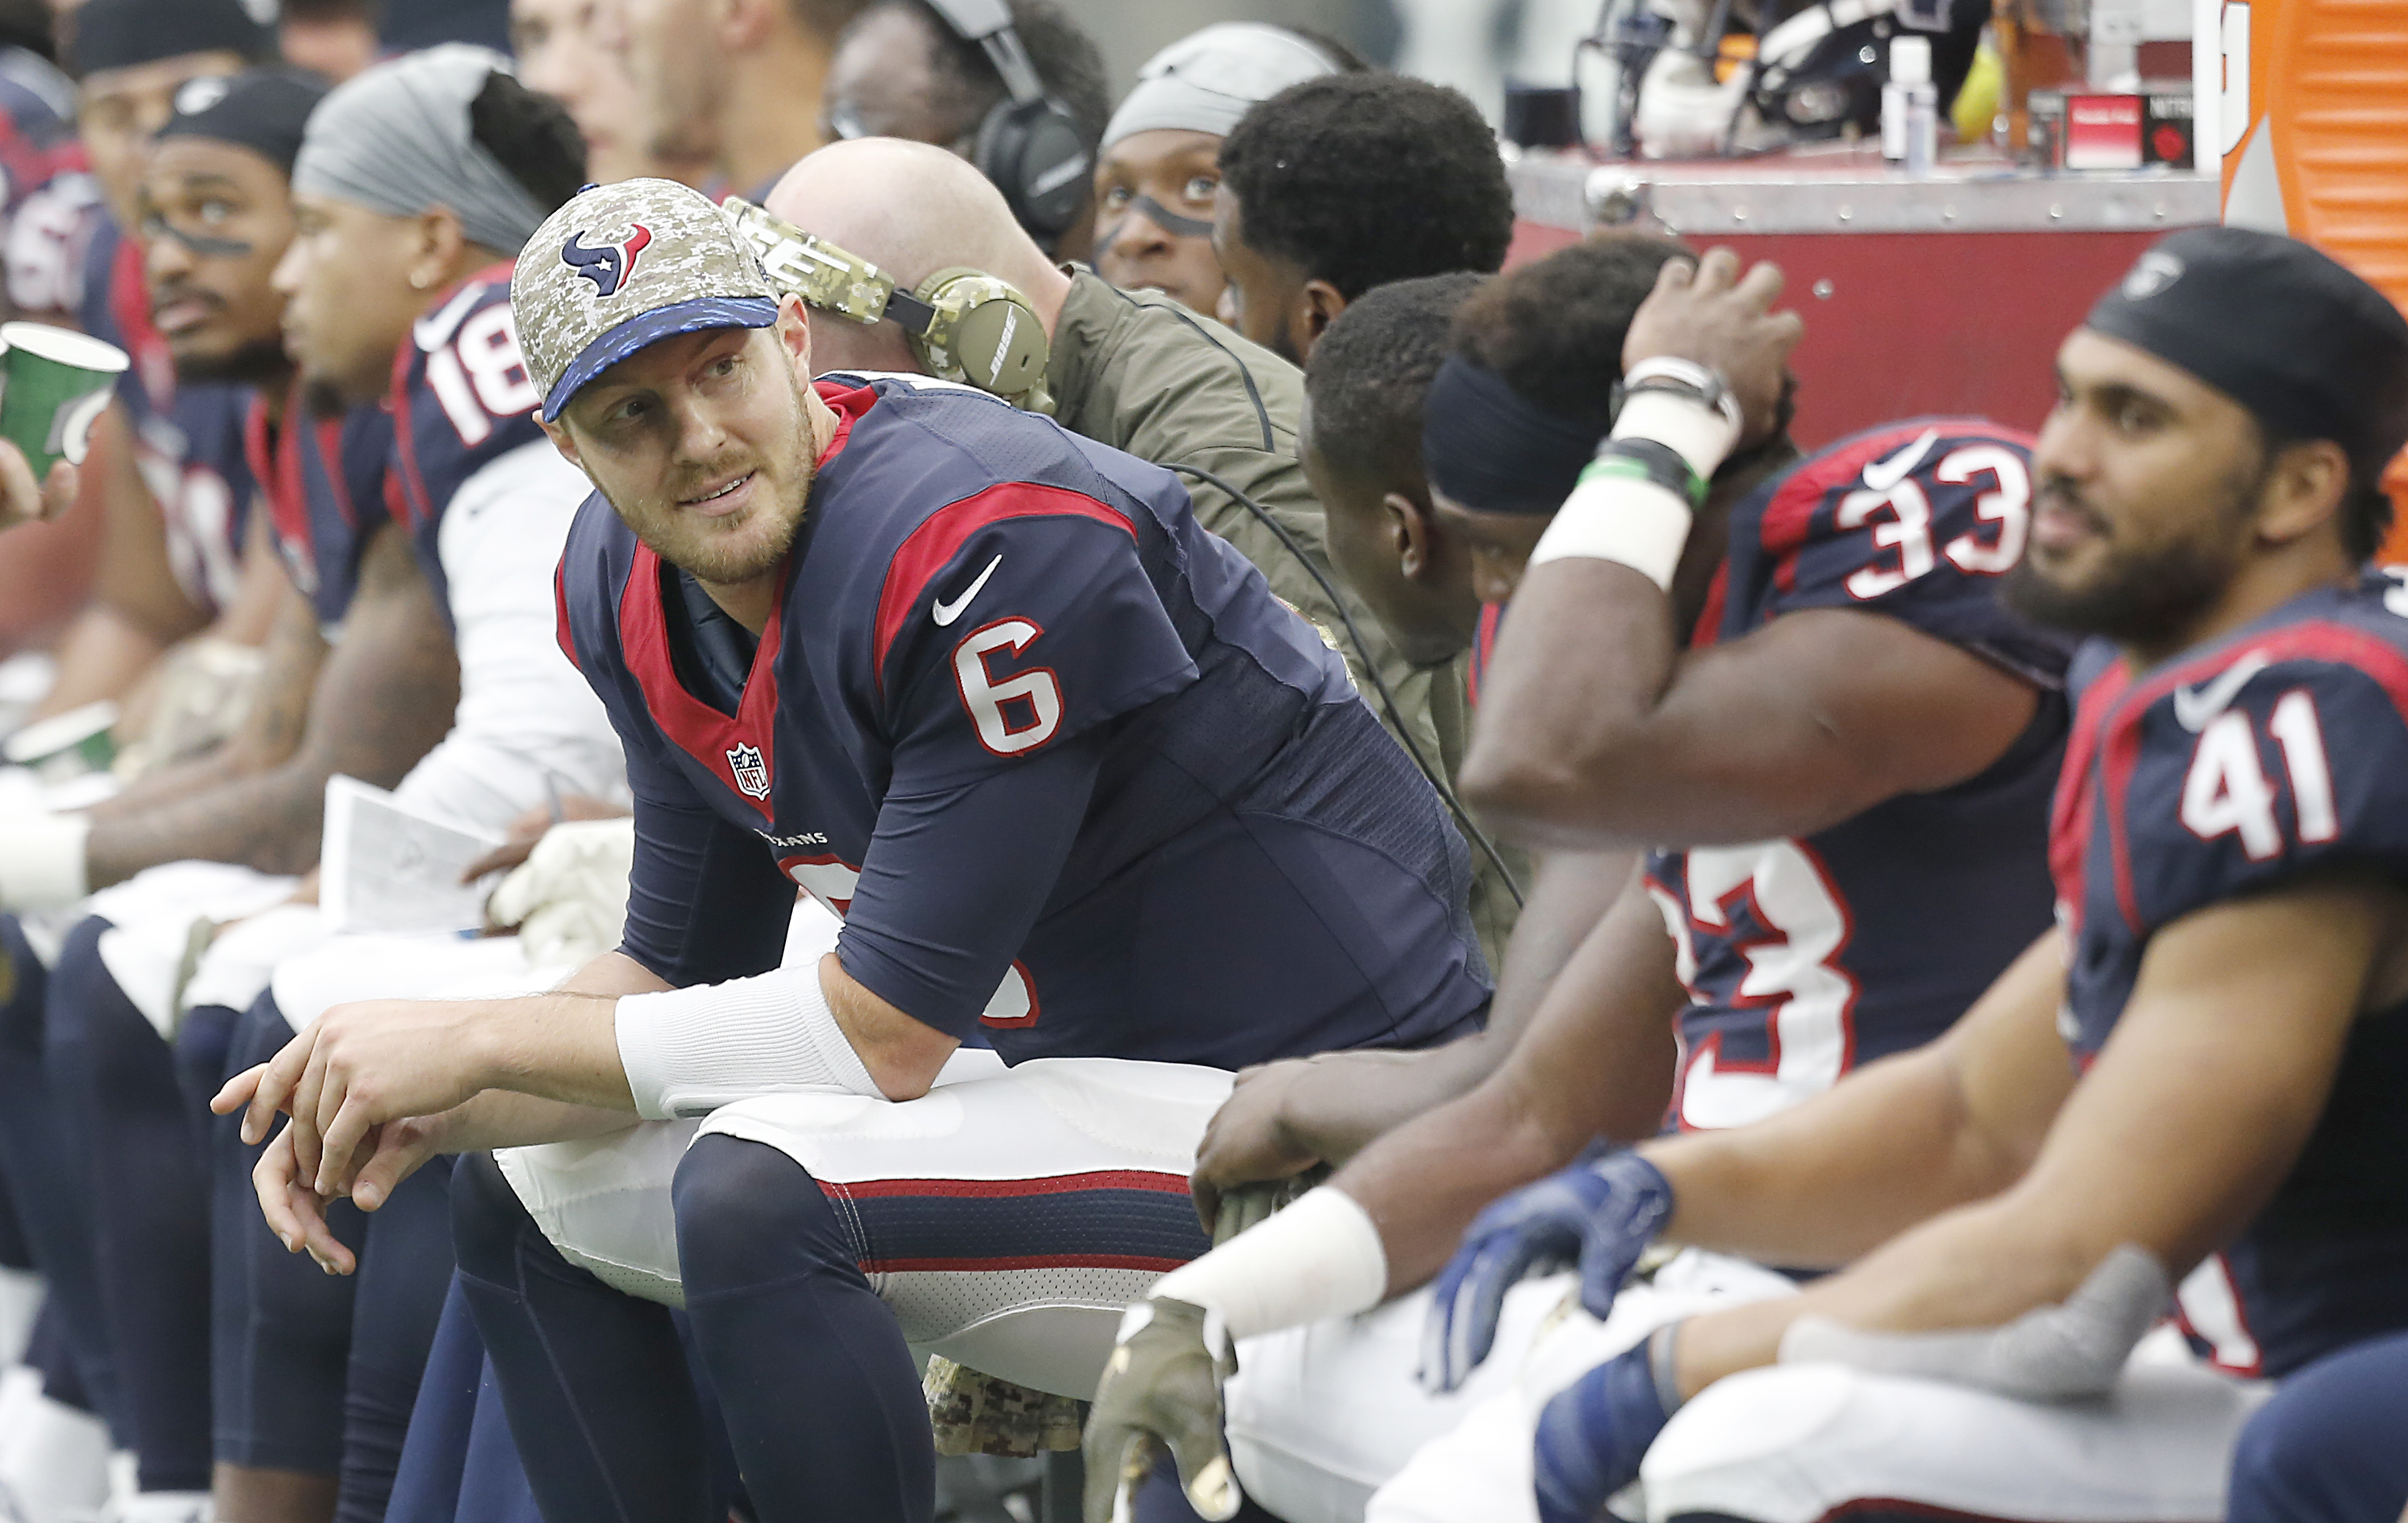 The Bills hope newly acquired quarterback T.J. Yates (6) doesn't see much of the field, but look to benefit from his knowledge. (Photo by Thomas Shea/Getty Images)